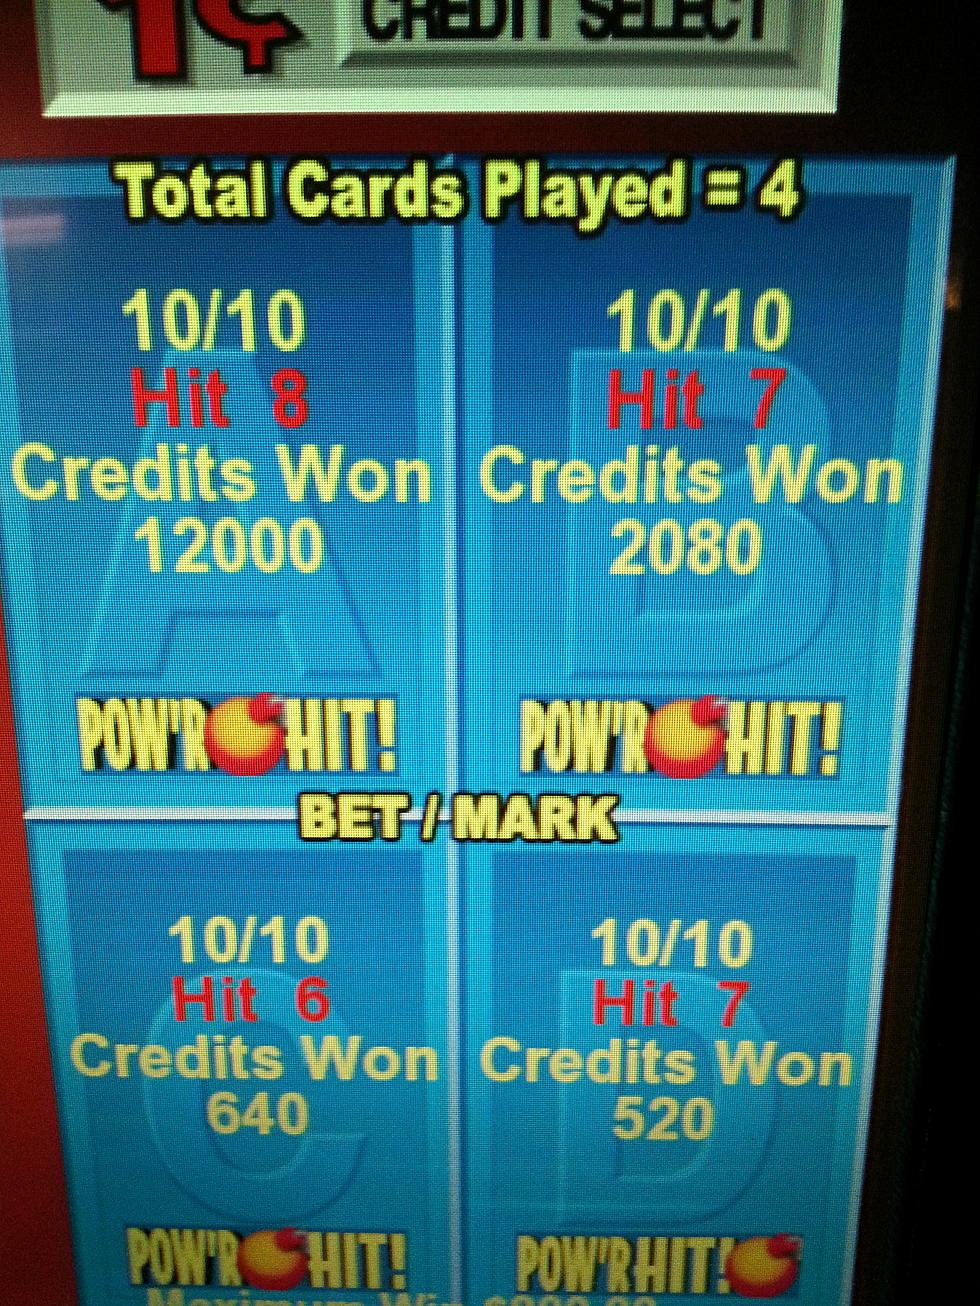 What casino app pays you